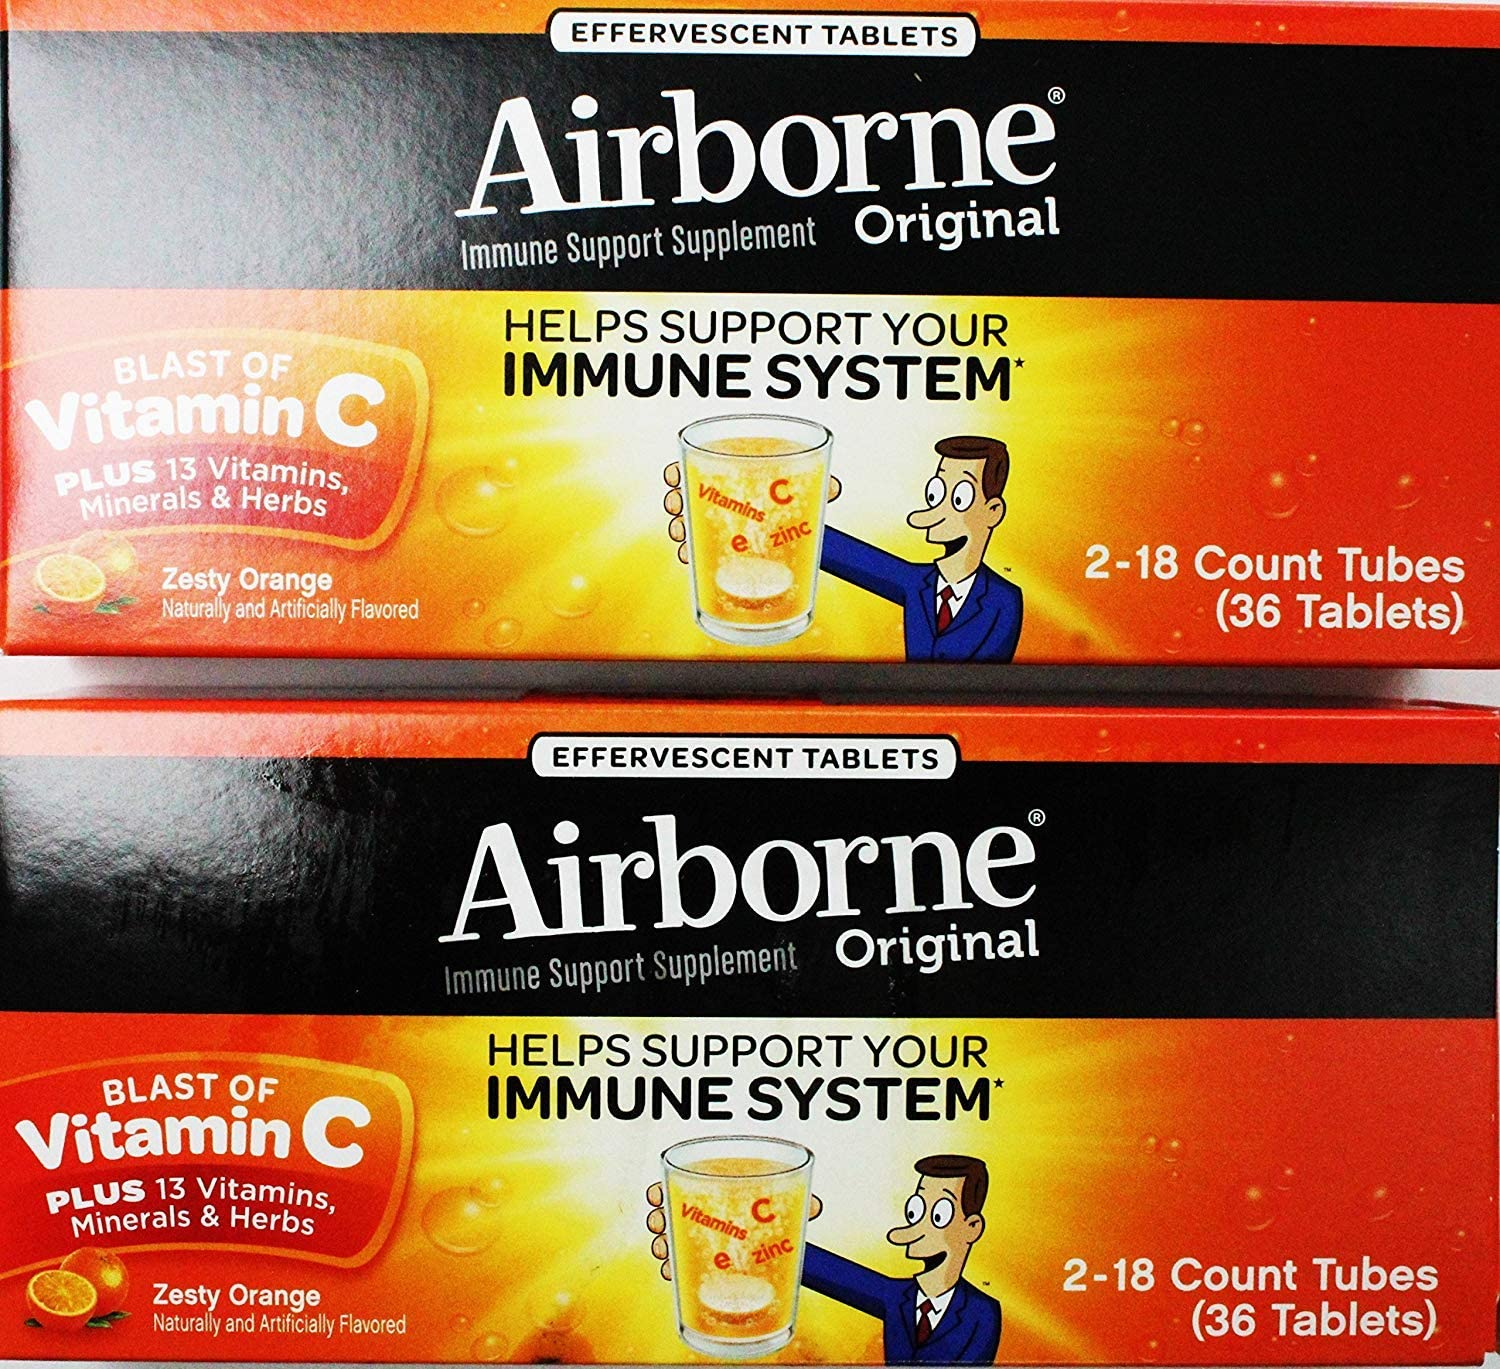 Airborne Effervescent Health Immune Boosting Formula Zesty Orange 36 Tablets Bonus Size 72 Count